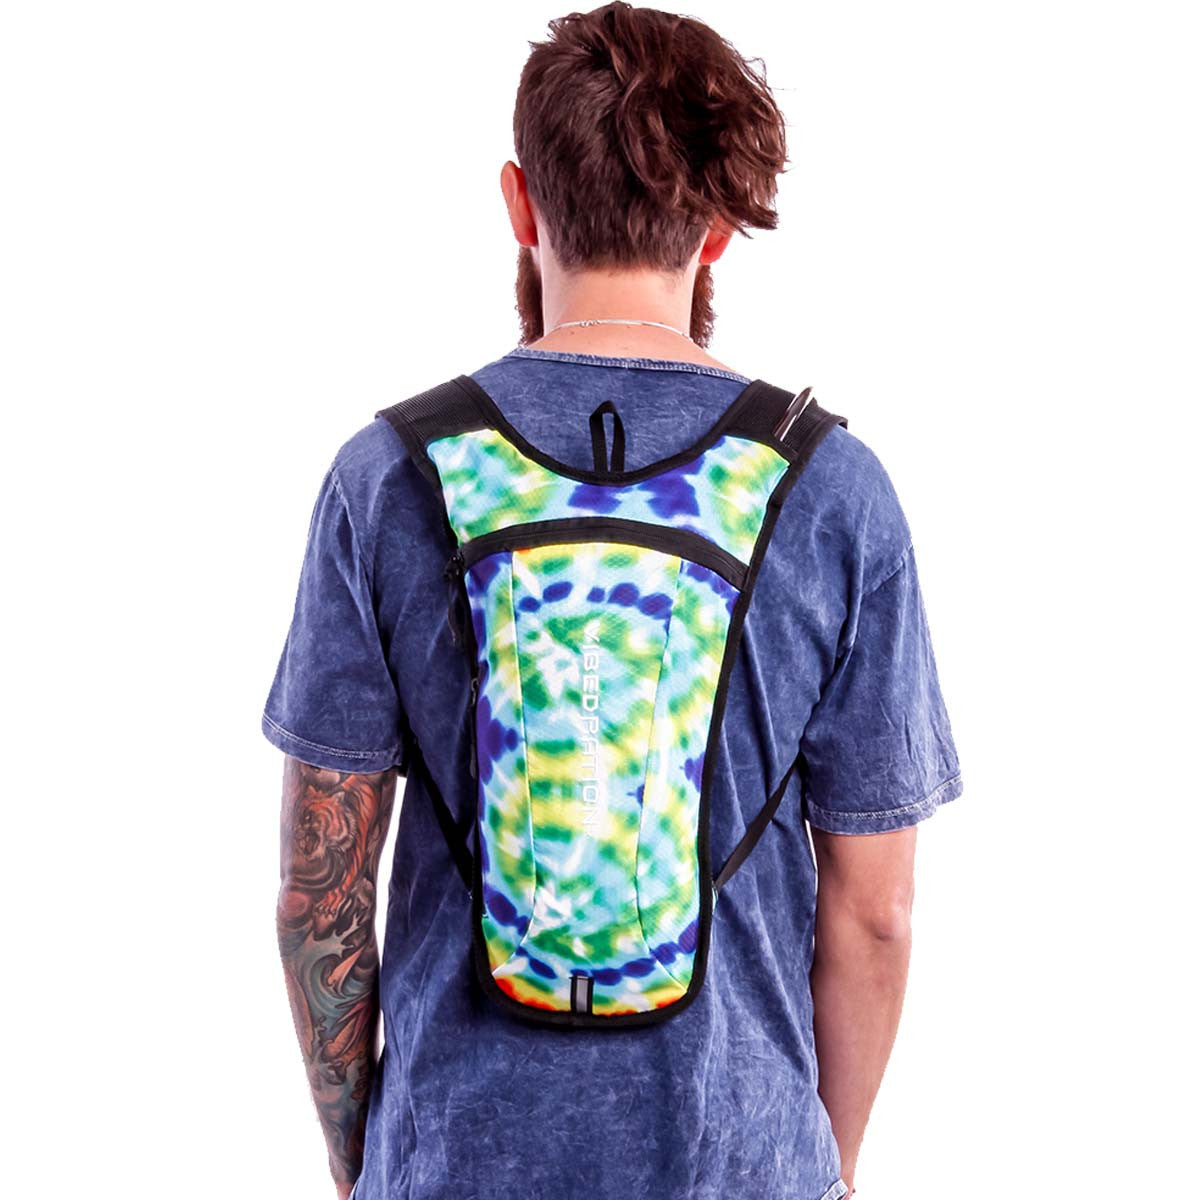 Male wearing Tie-dye Hydration pack